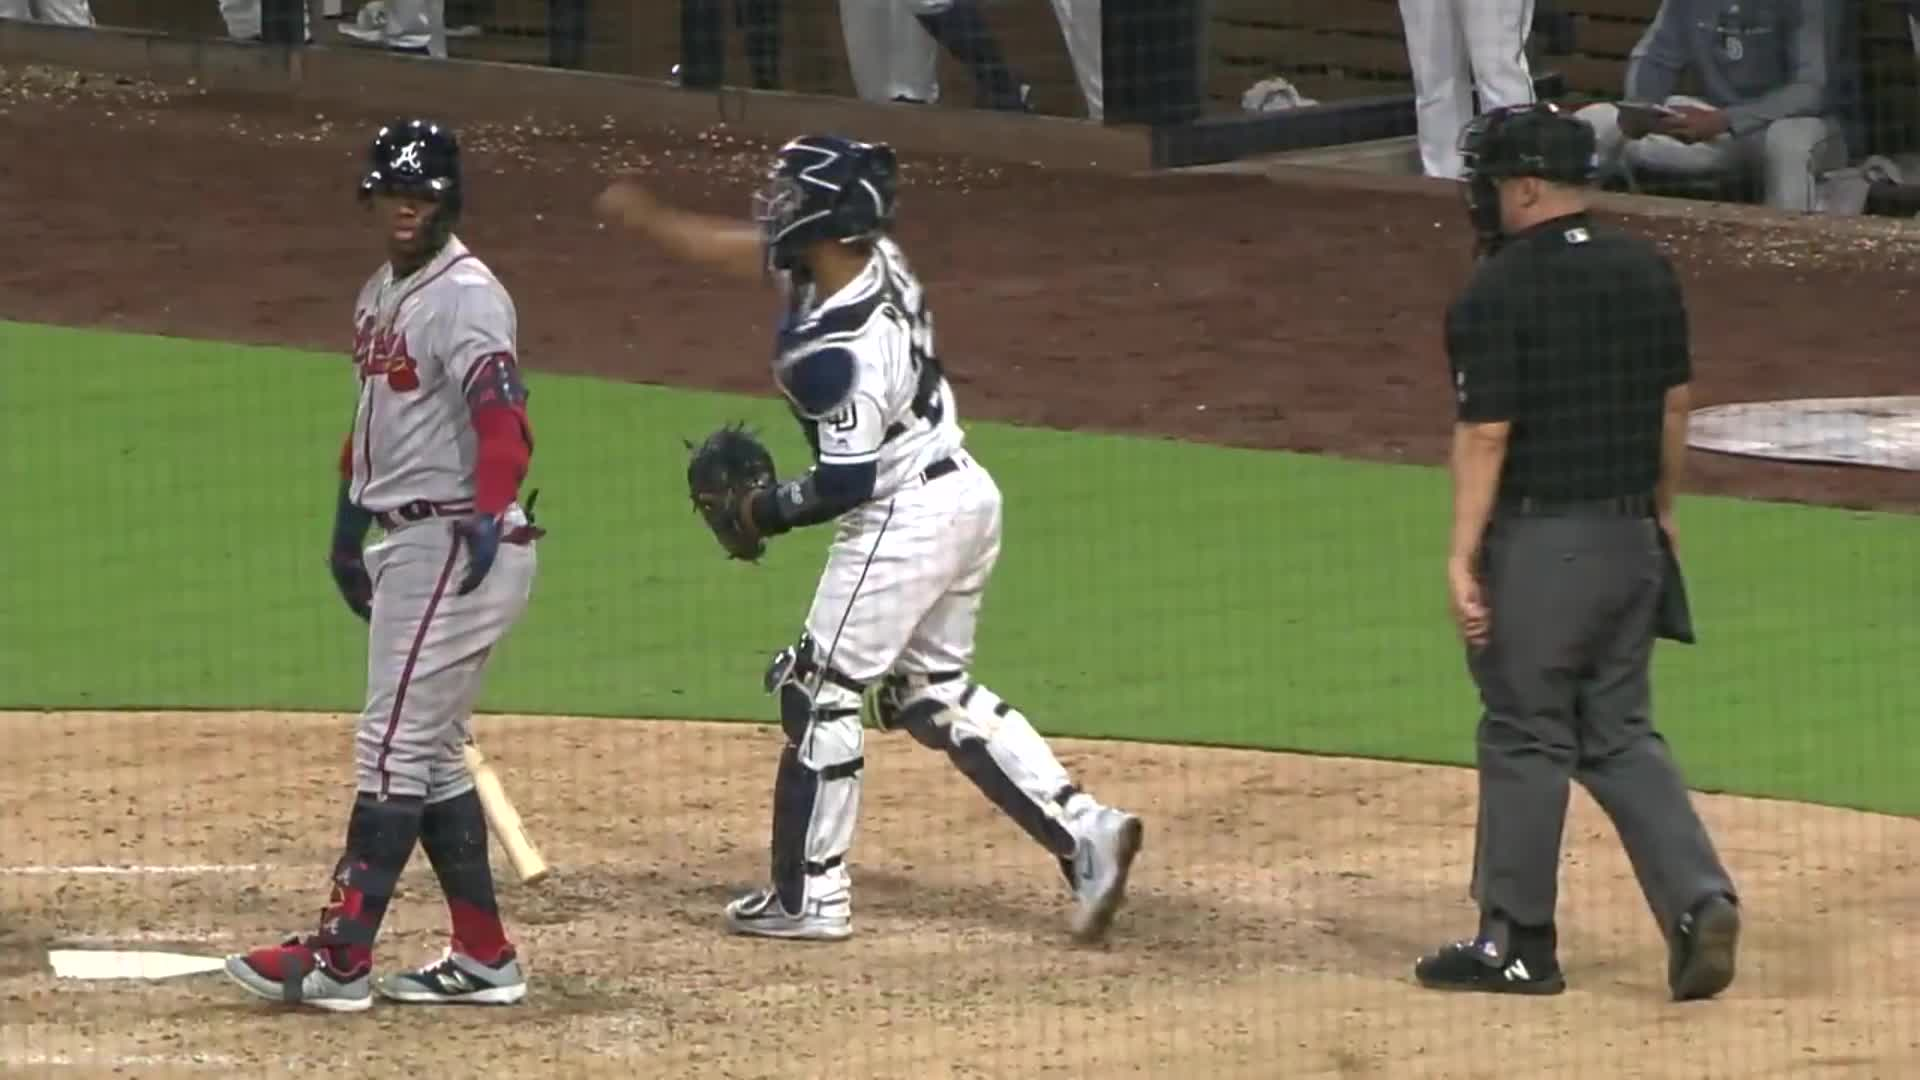 atlanta, baseball, braves, Ronald Acuña Jr. throwing up his arms in disbelief. GIFs